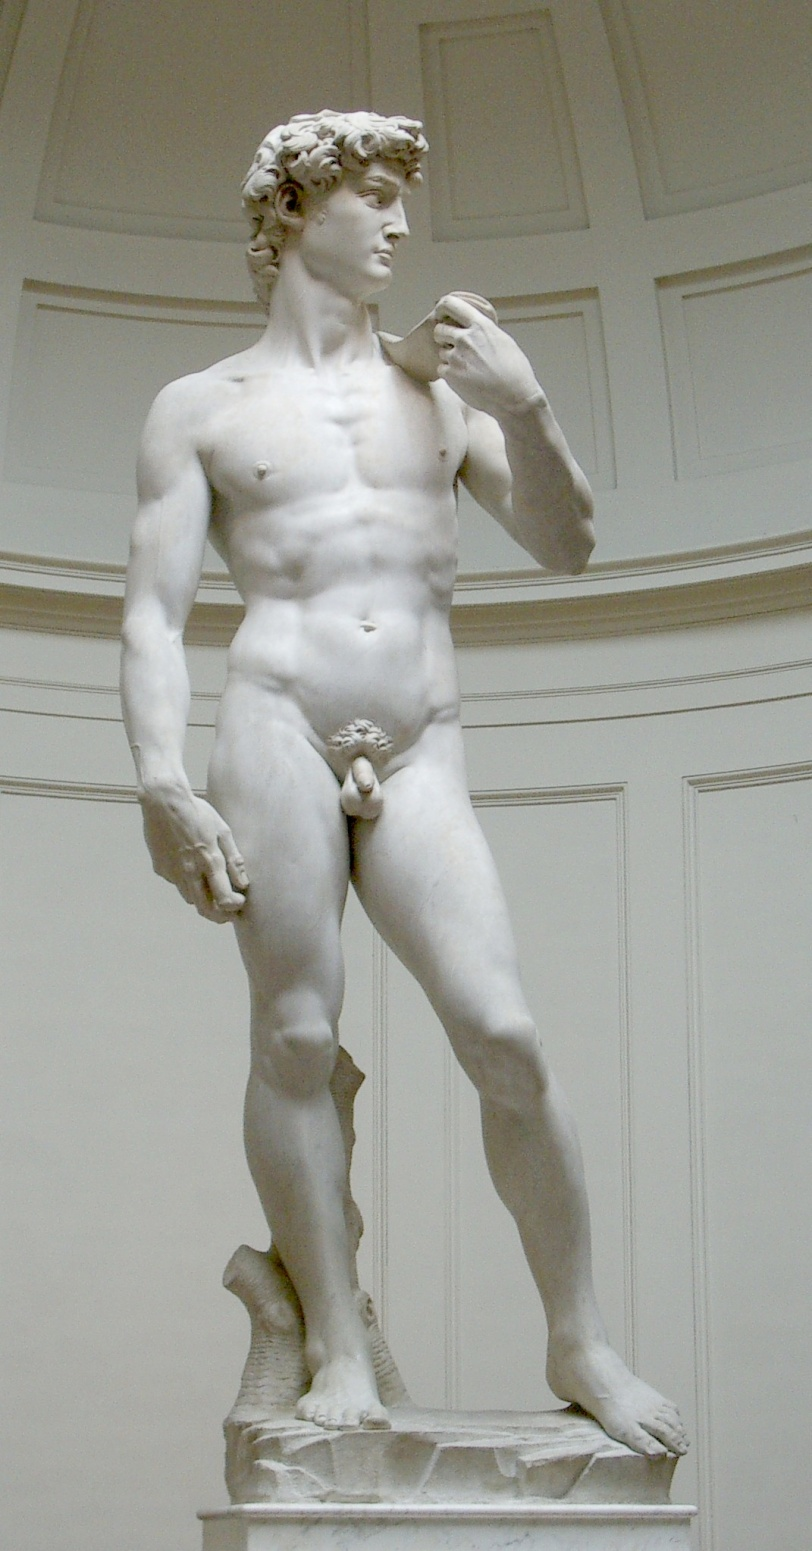 Michelangelo's Statue of David (Photo source: Wikimedia Commons)